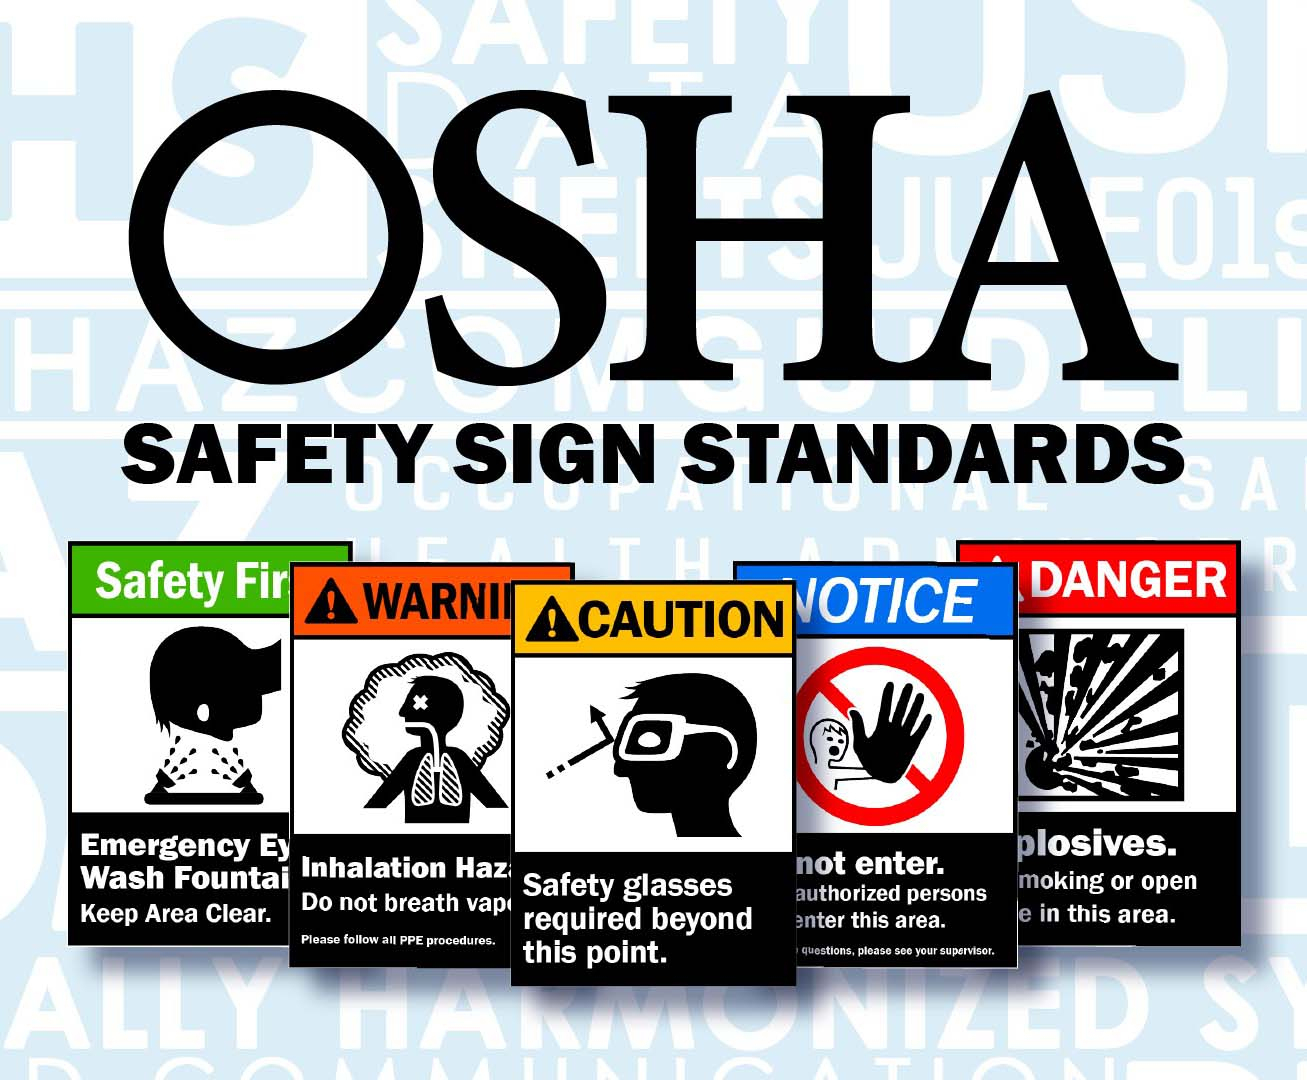 Safety Signs Coupon Code : Loreal Printable Coupons 2018 - Osha Signs Free Printable